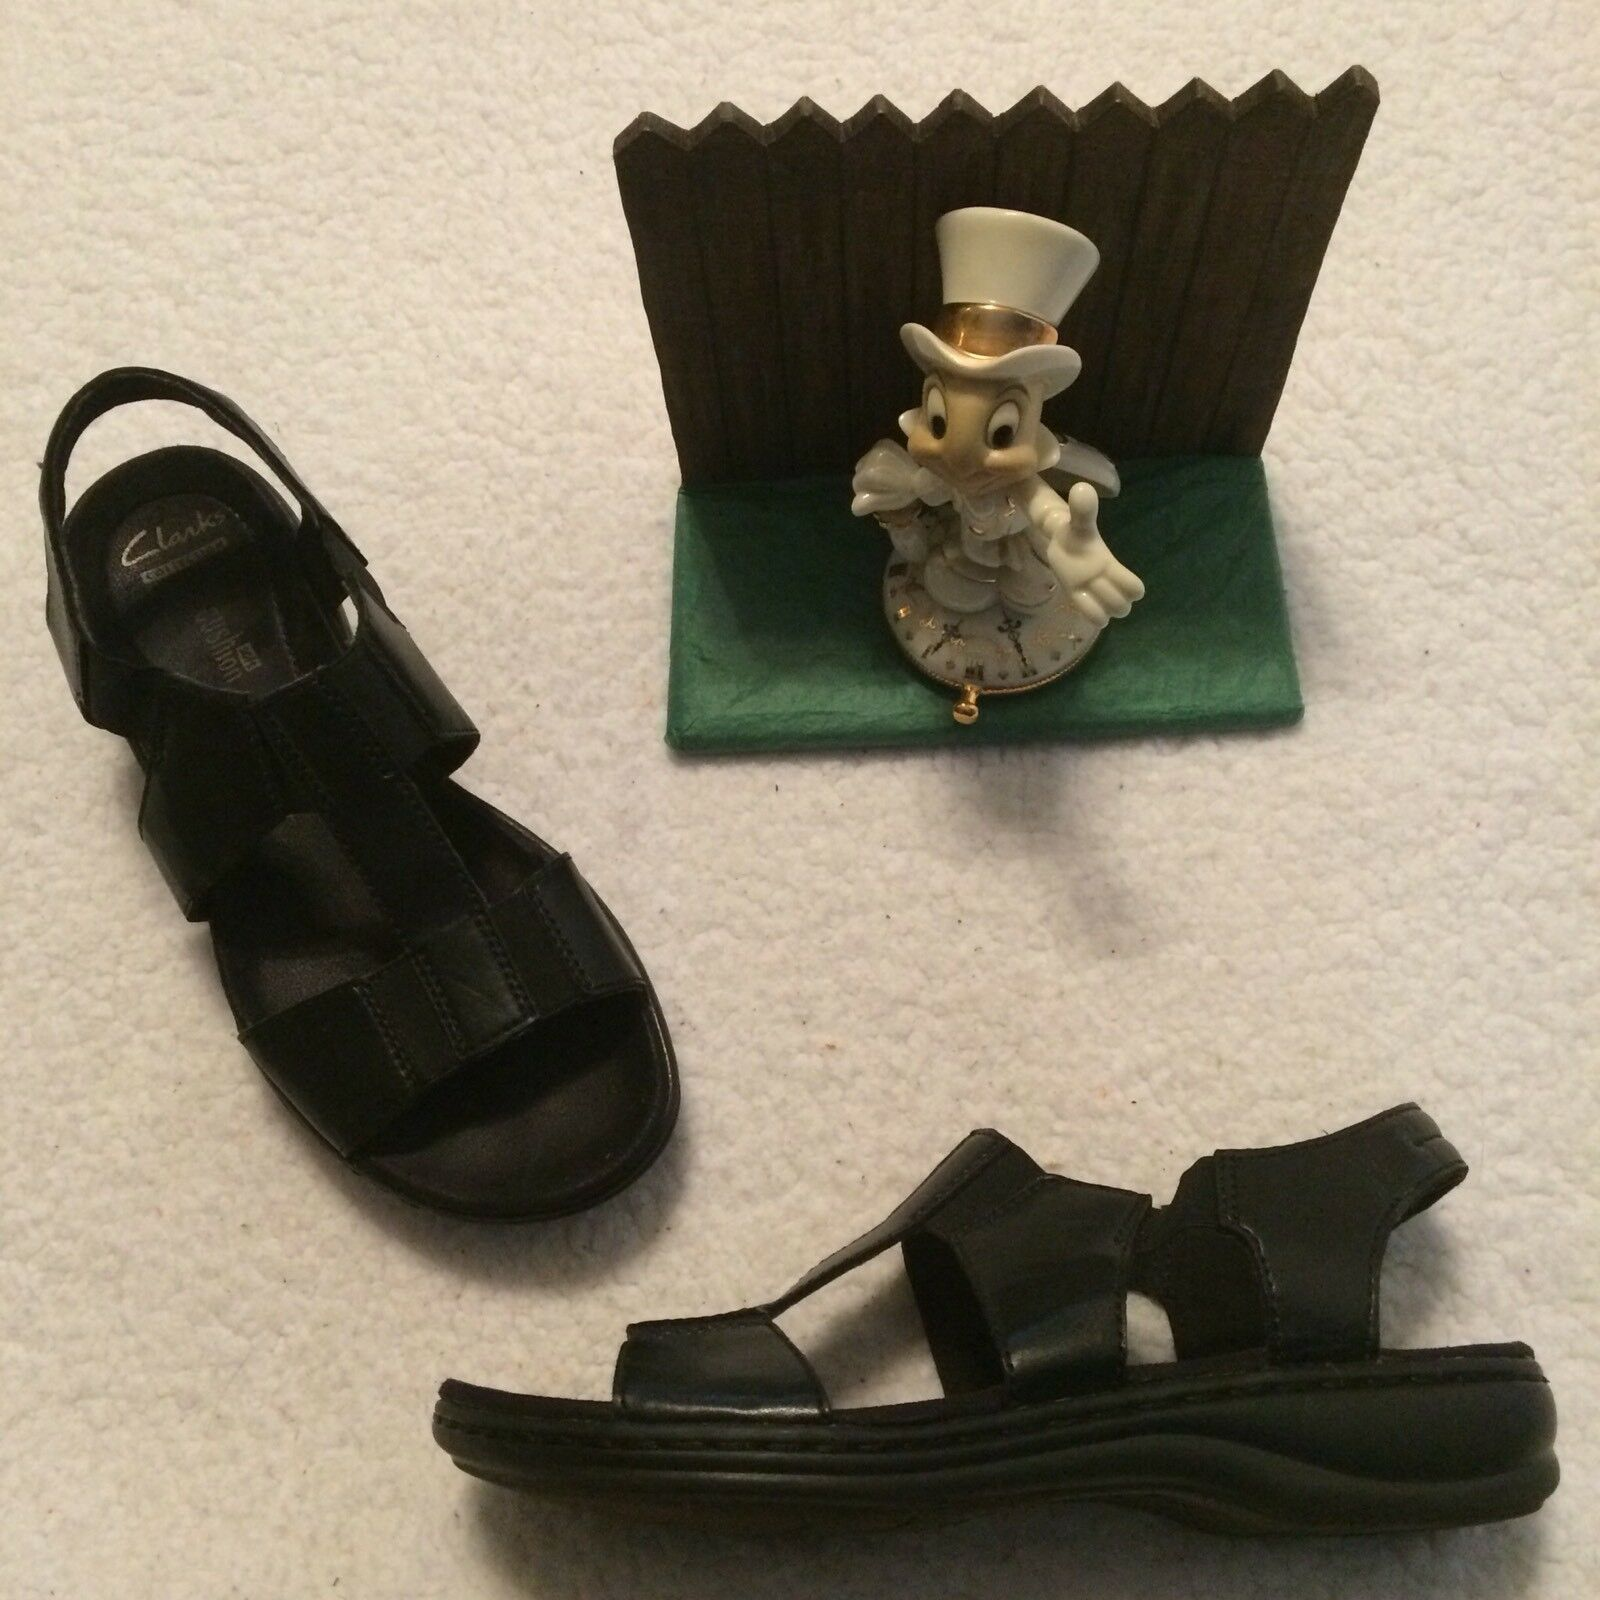 Clarks Soft Collection Size 6   36 Black Leather Sandals 26118300 MINIMAL WEAR